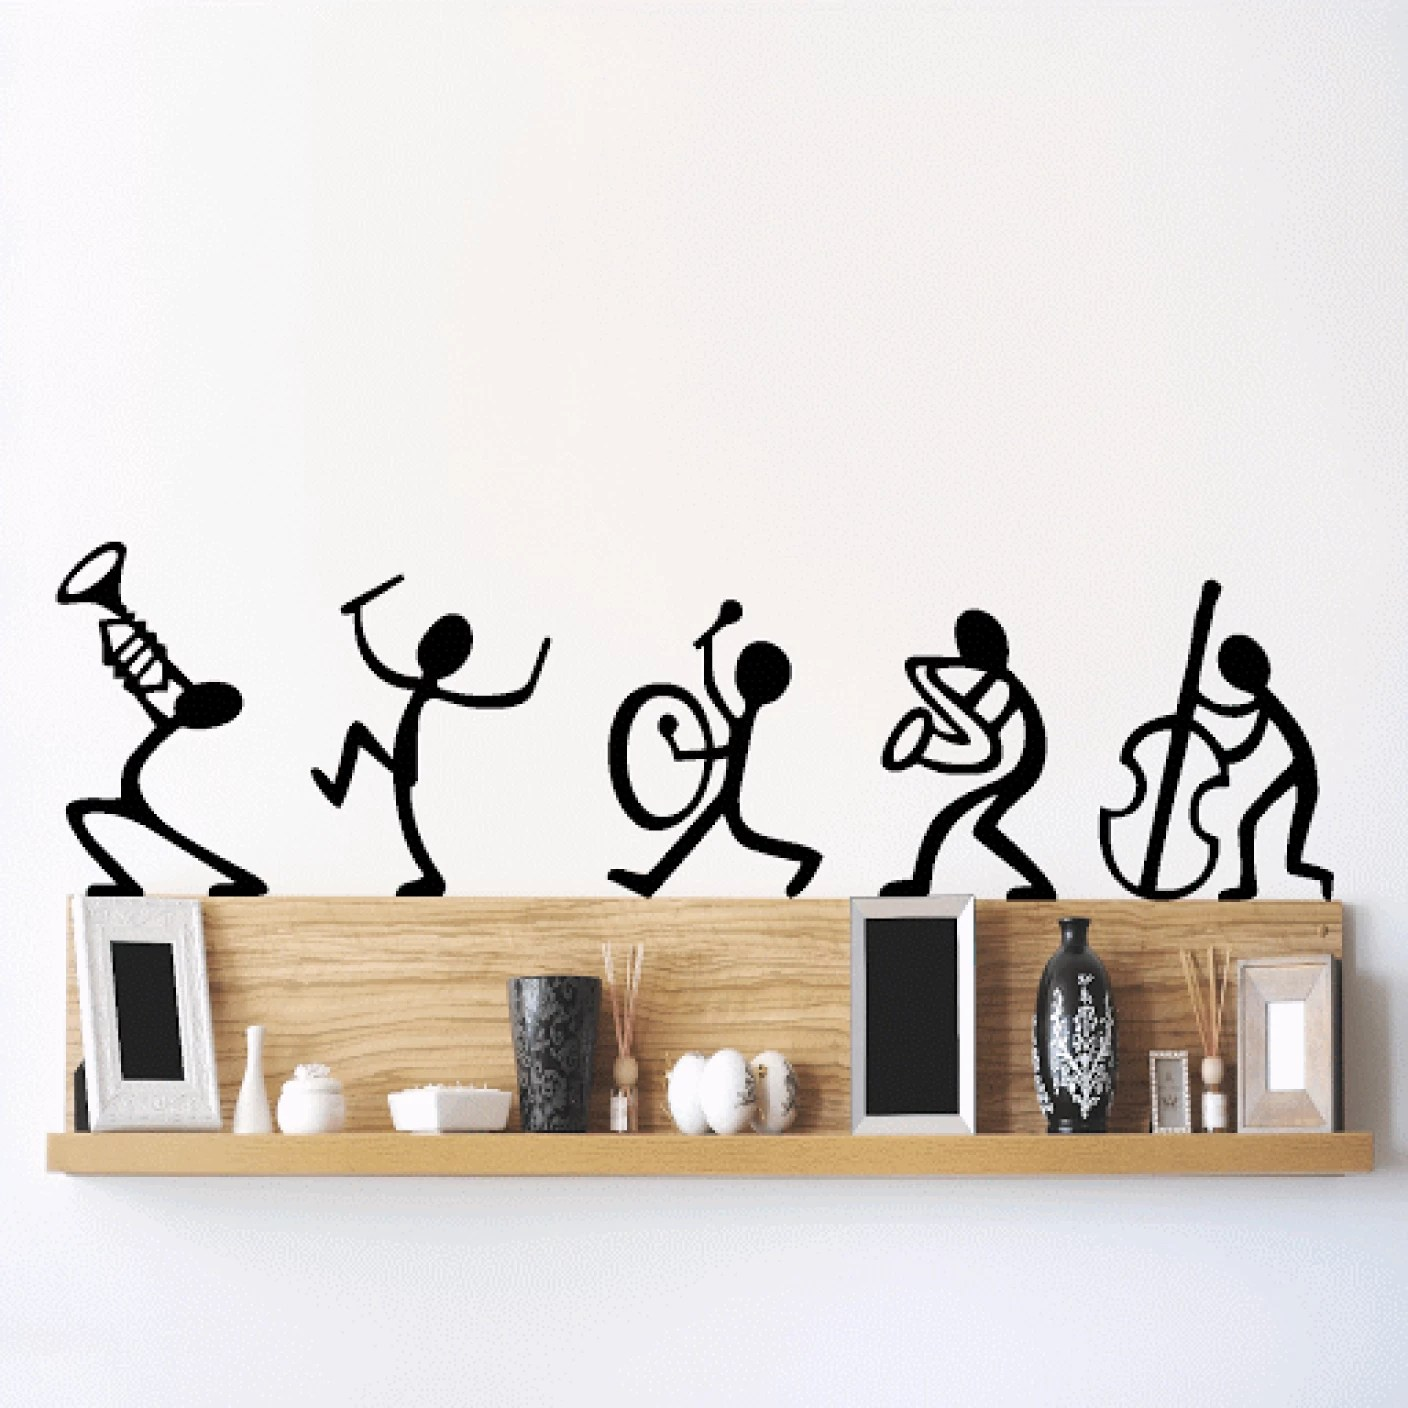 DeStudio Large Wall Stickers Sticker Price in India